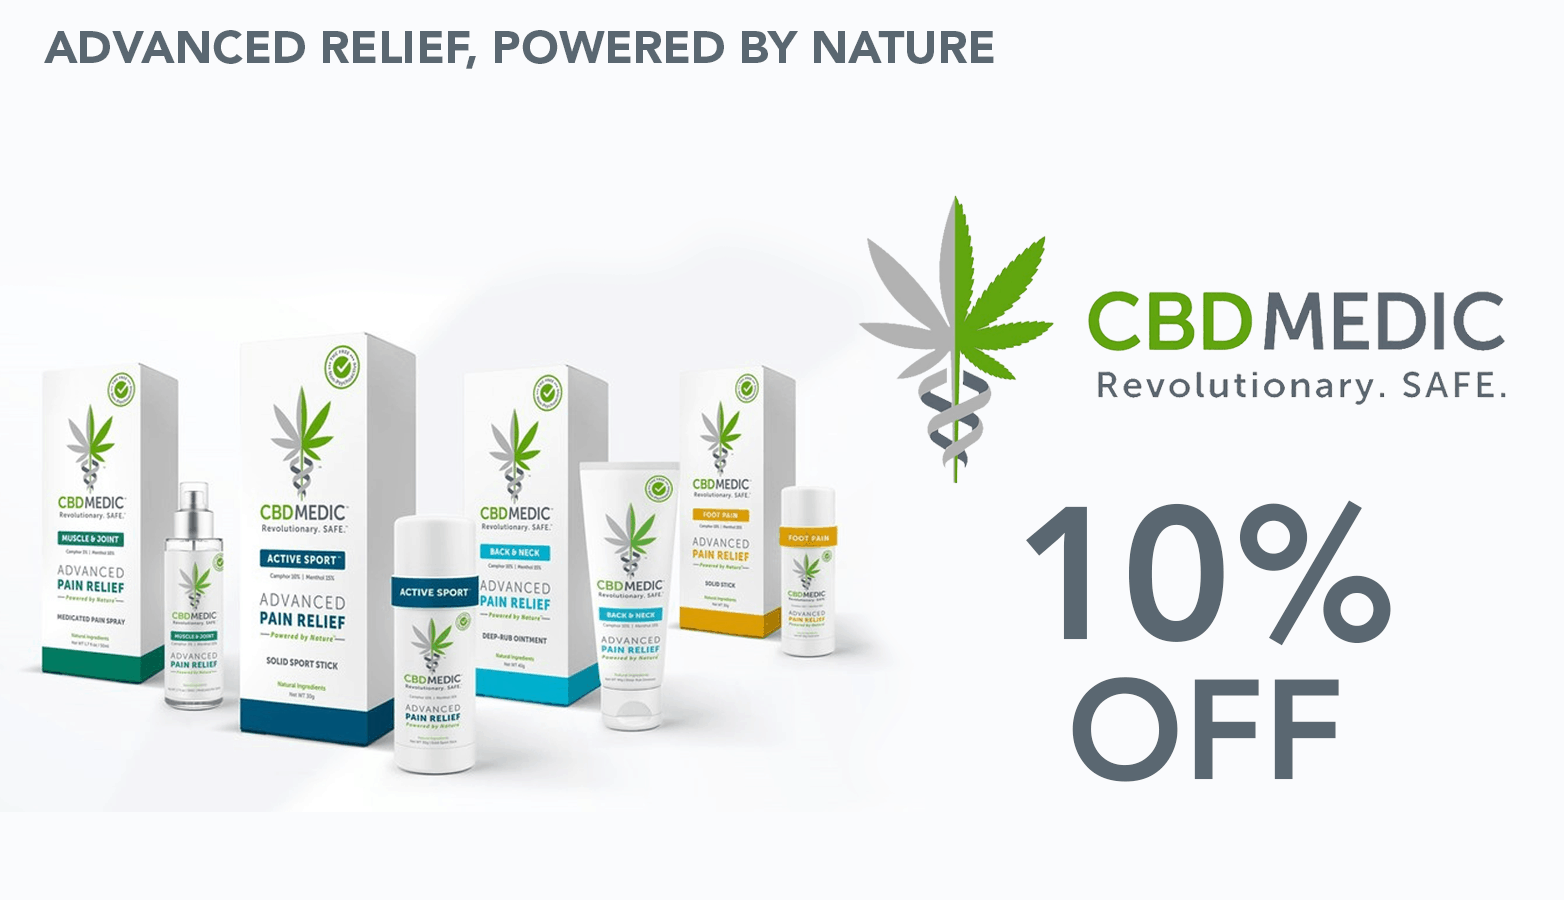 CBDMEDIC Coupon Code at Save On Cannabis